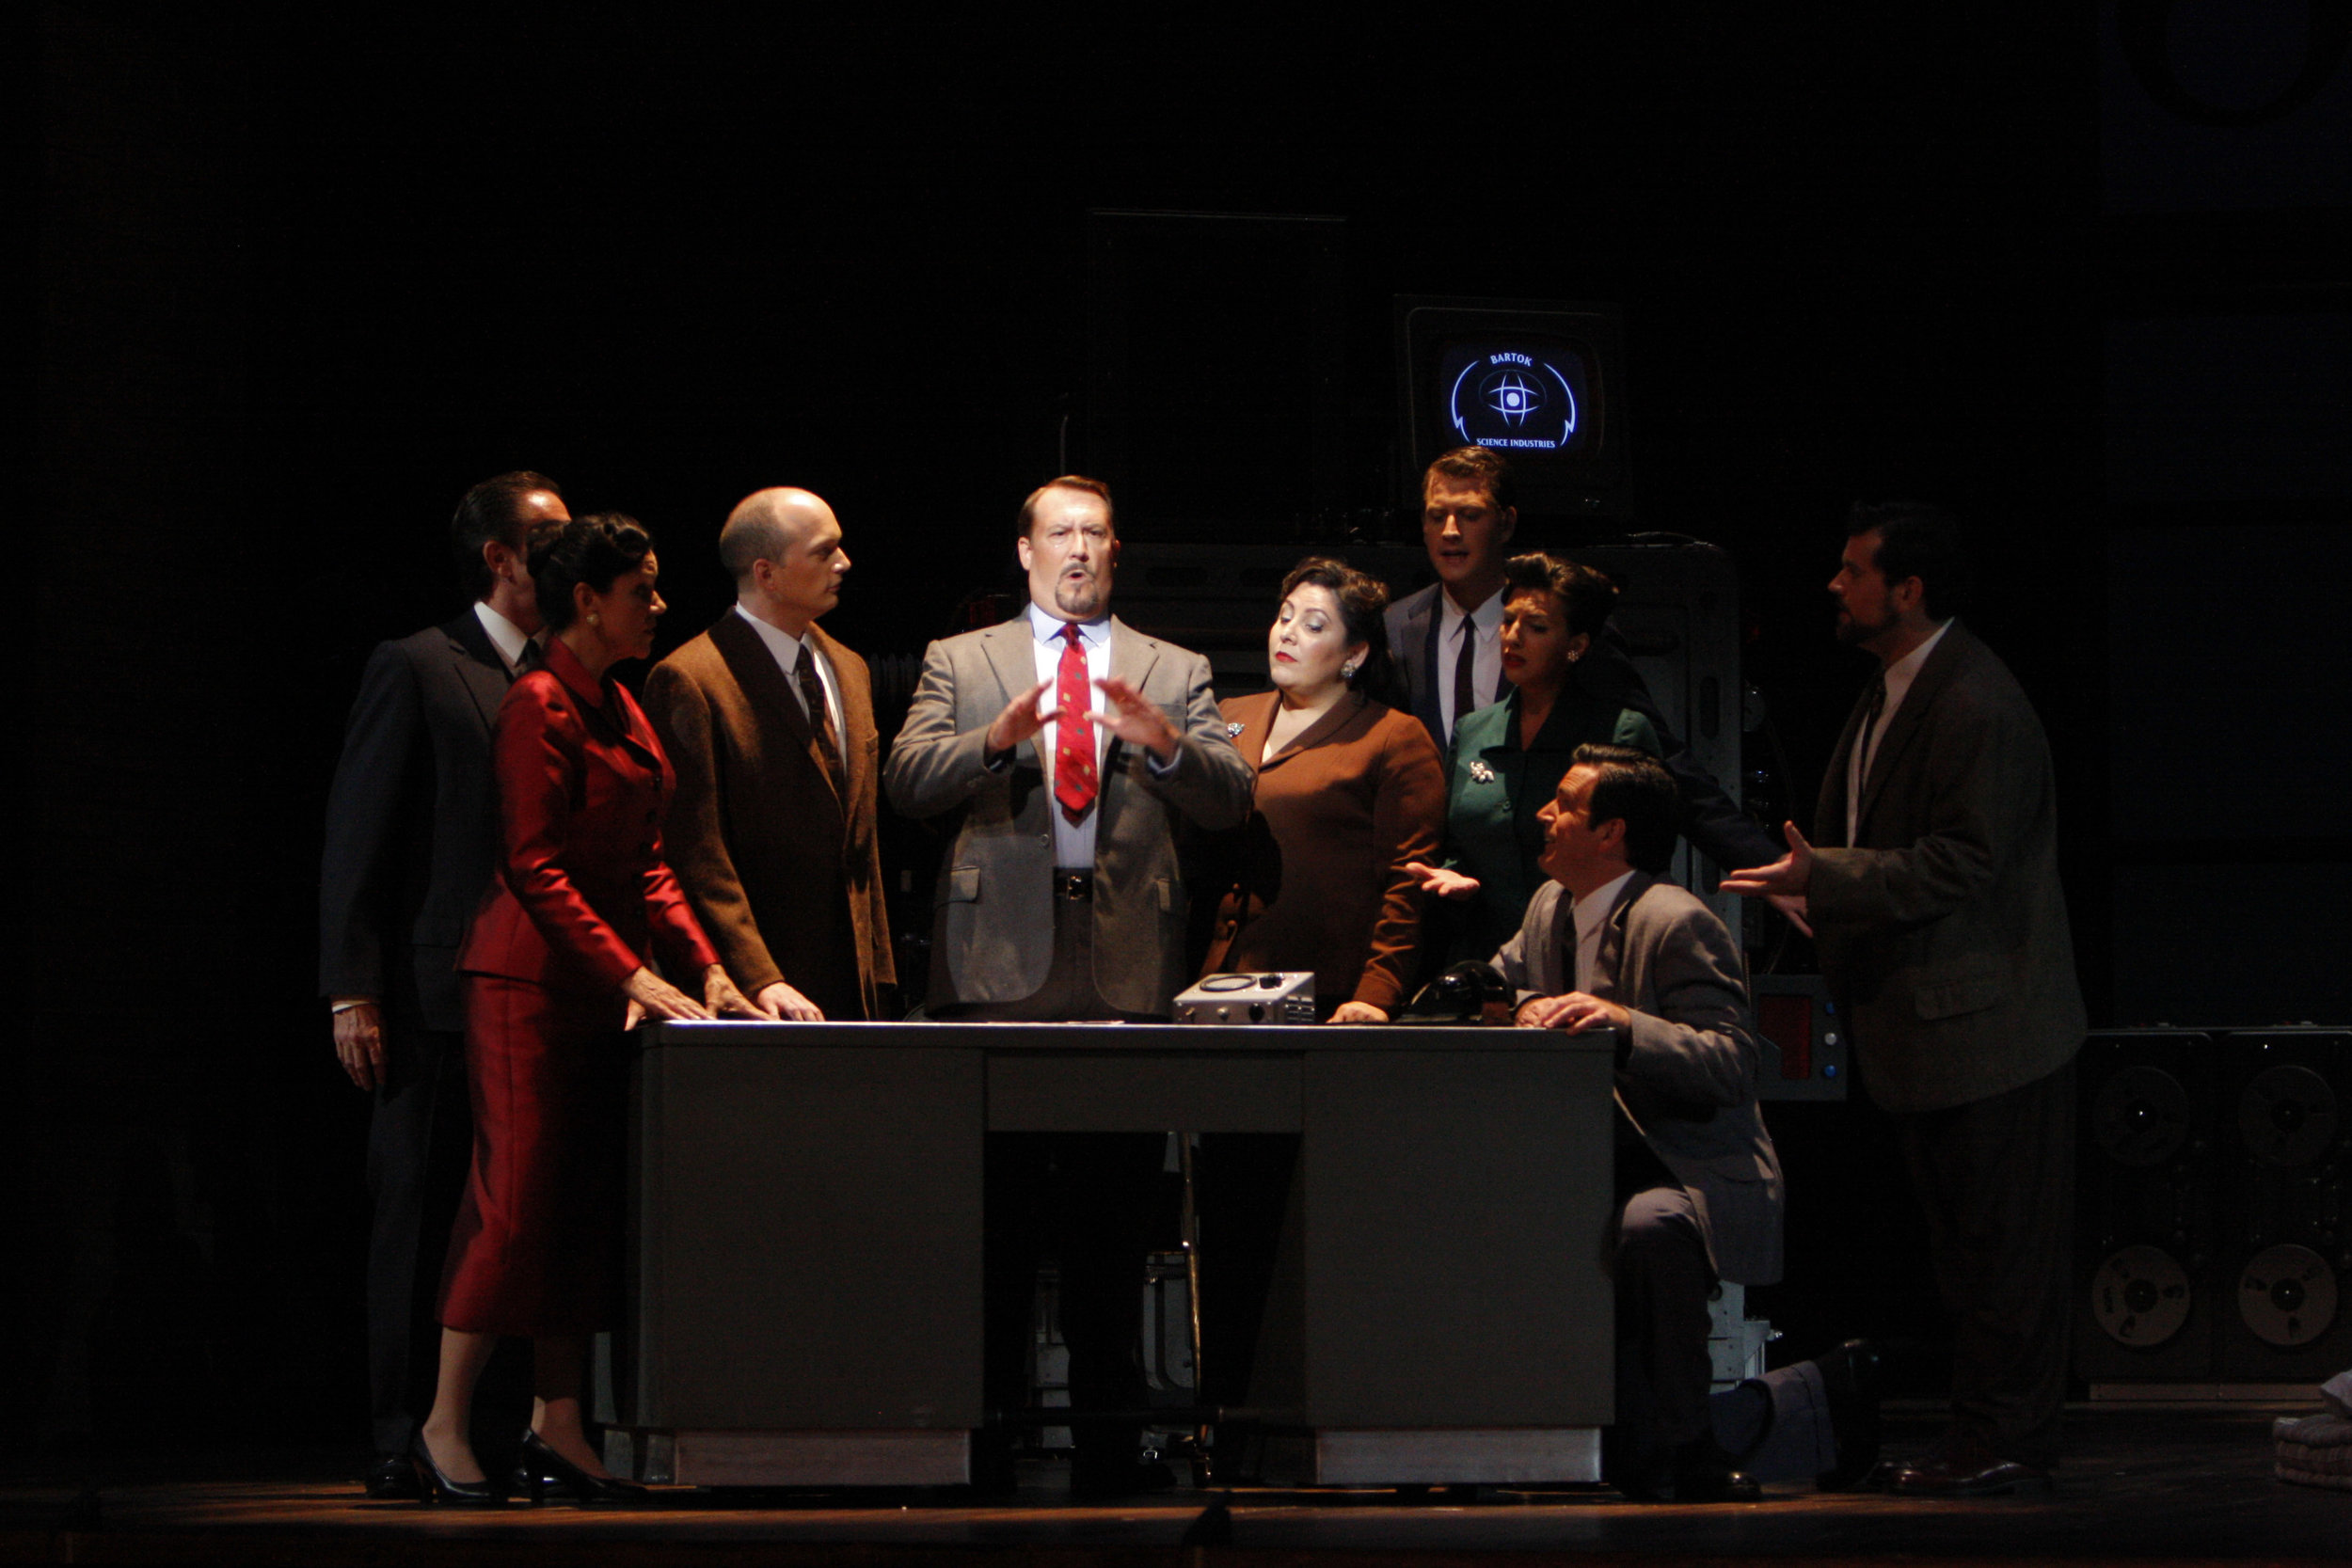 Gary Lehman (center) as Stathis Borans in The Fly. Photo by Robert Millard for the Los Angeles Opera, 2008